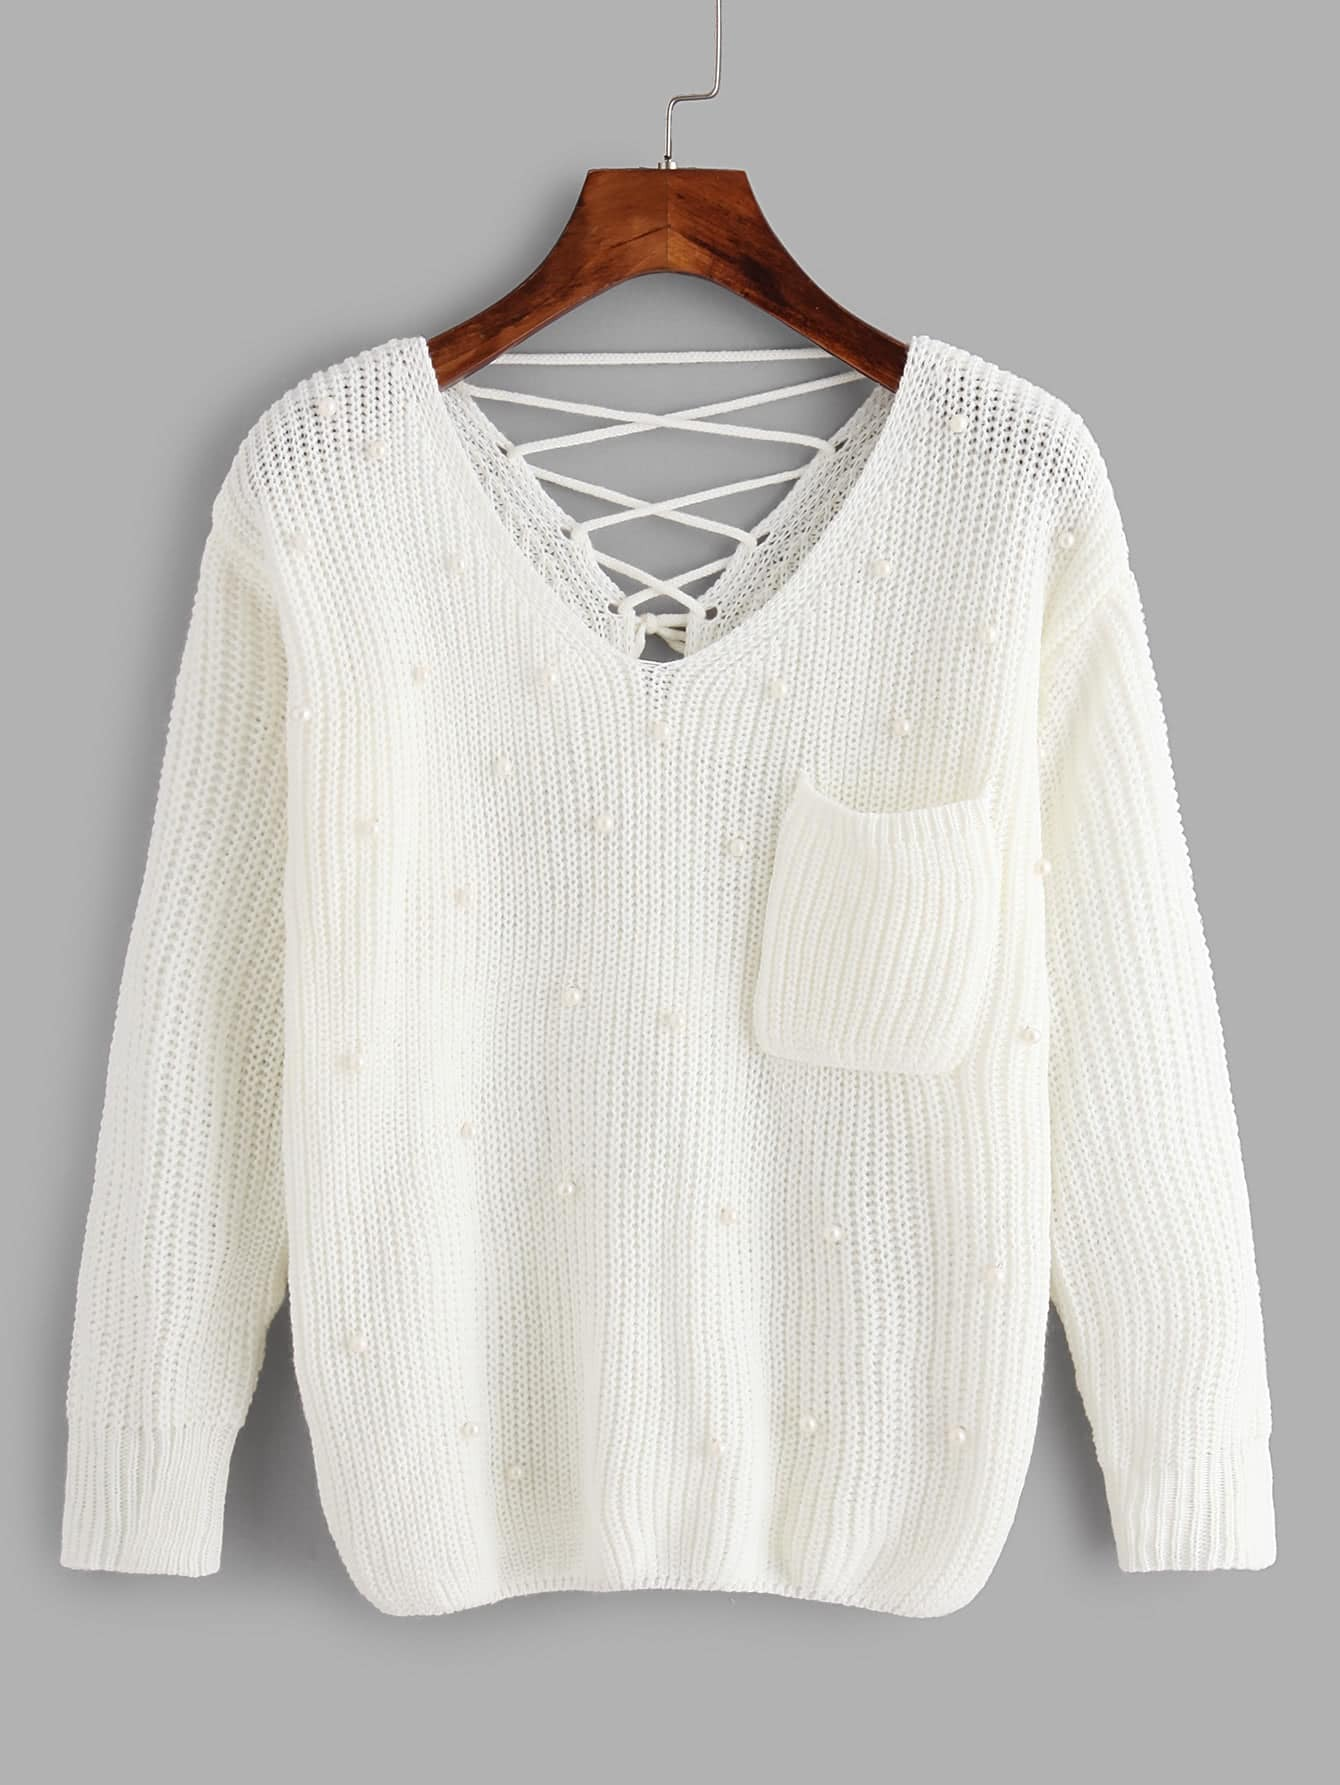 Double Plunge Criss Cross Back Chunky Knit Jumper sweater171115071